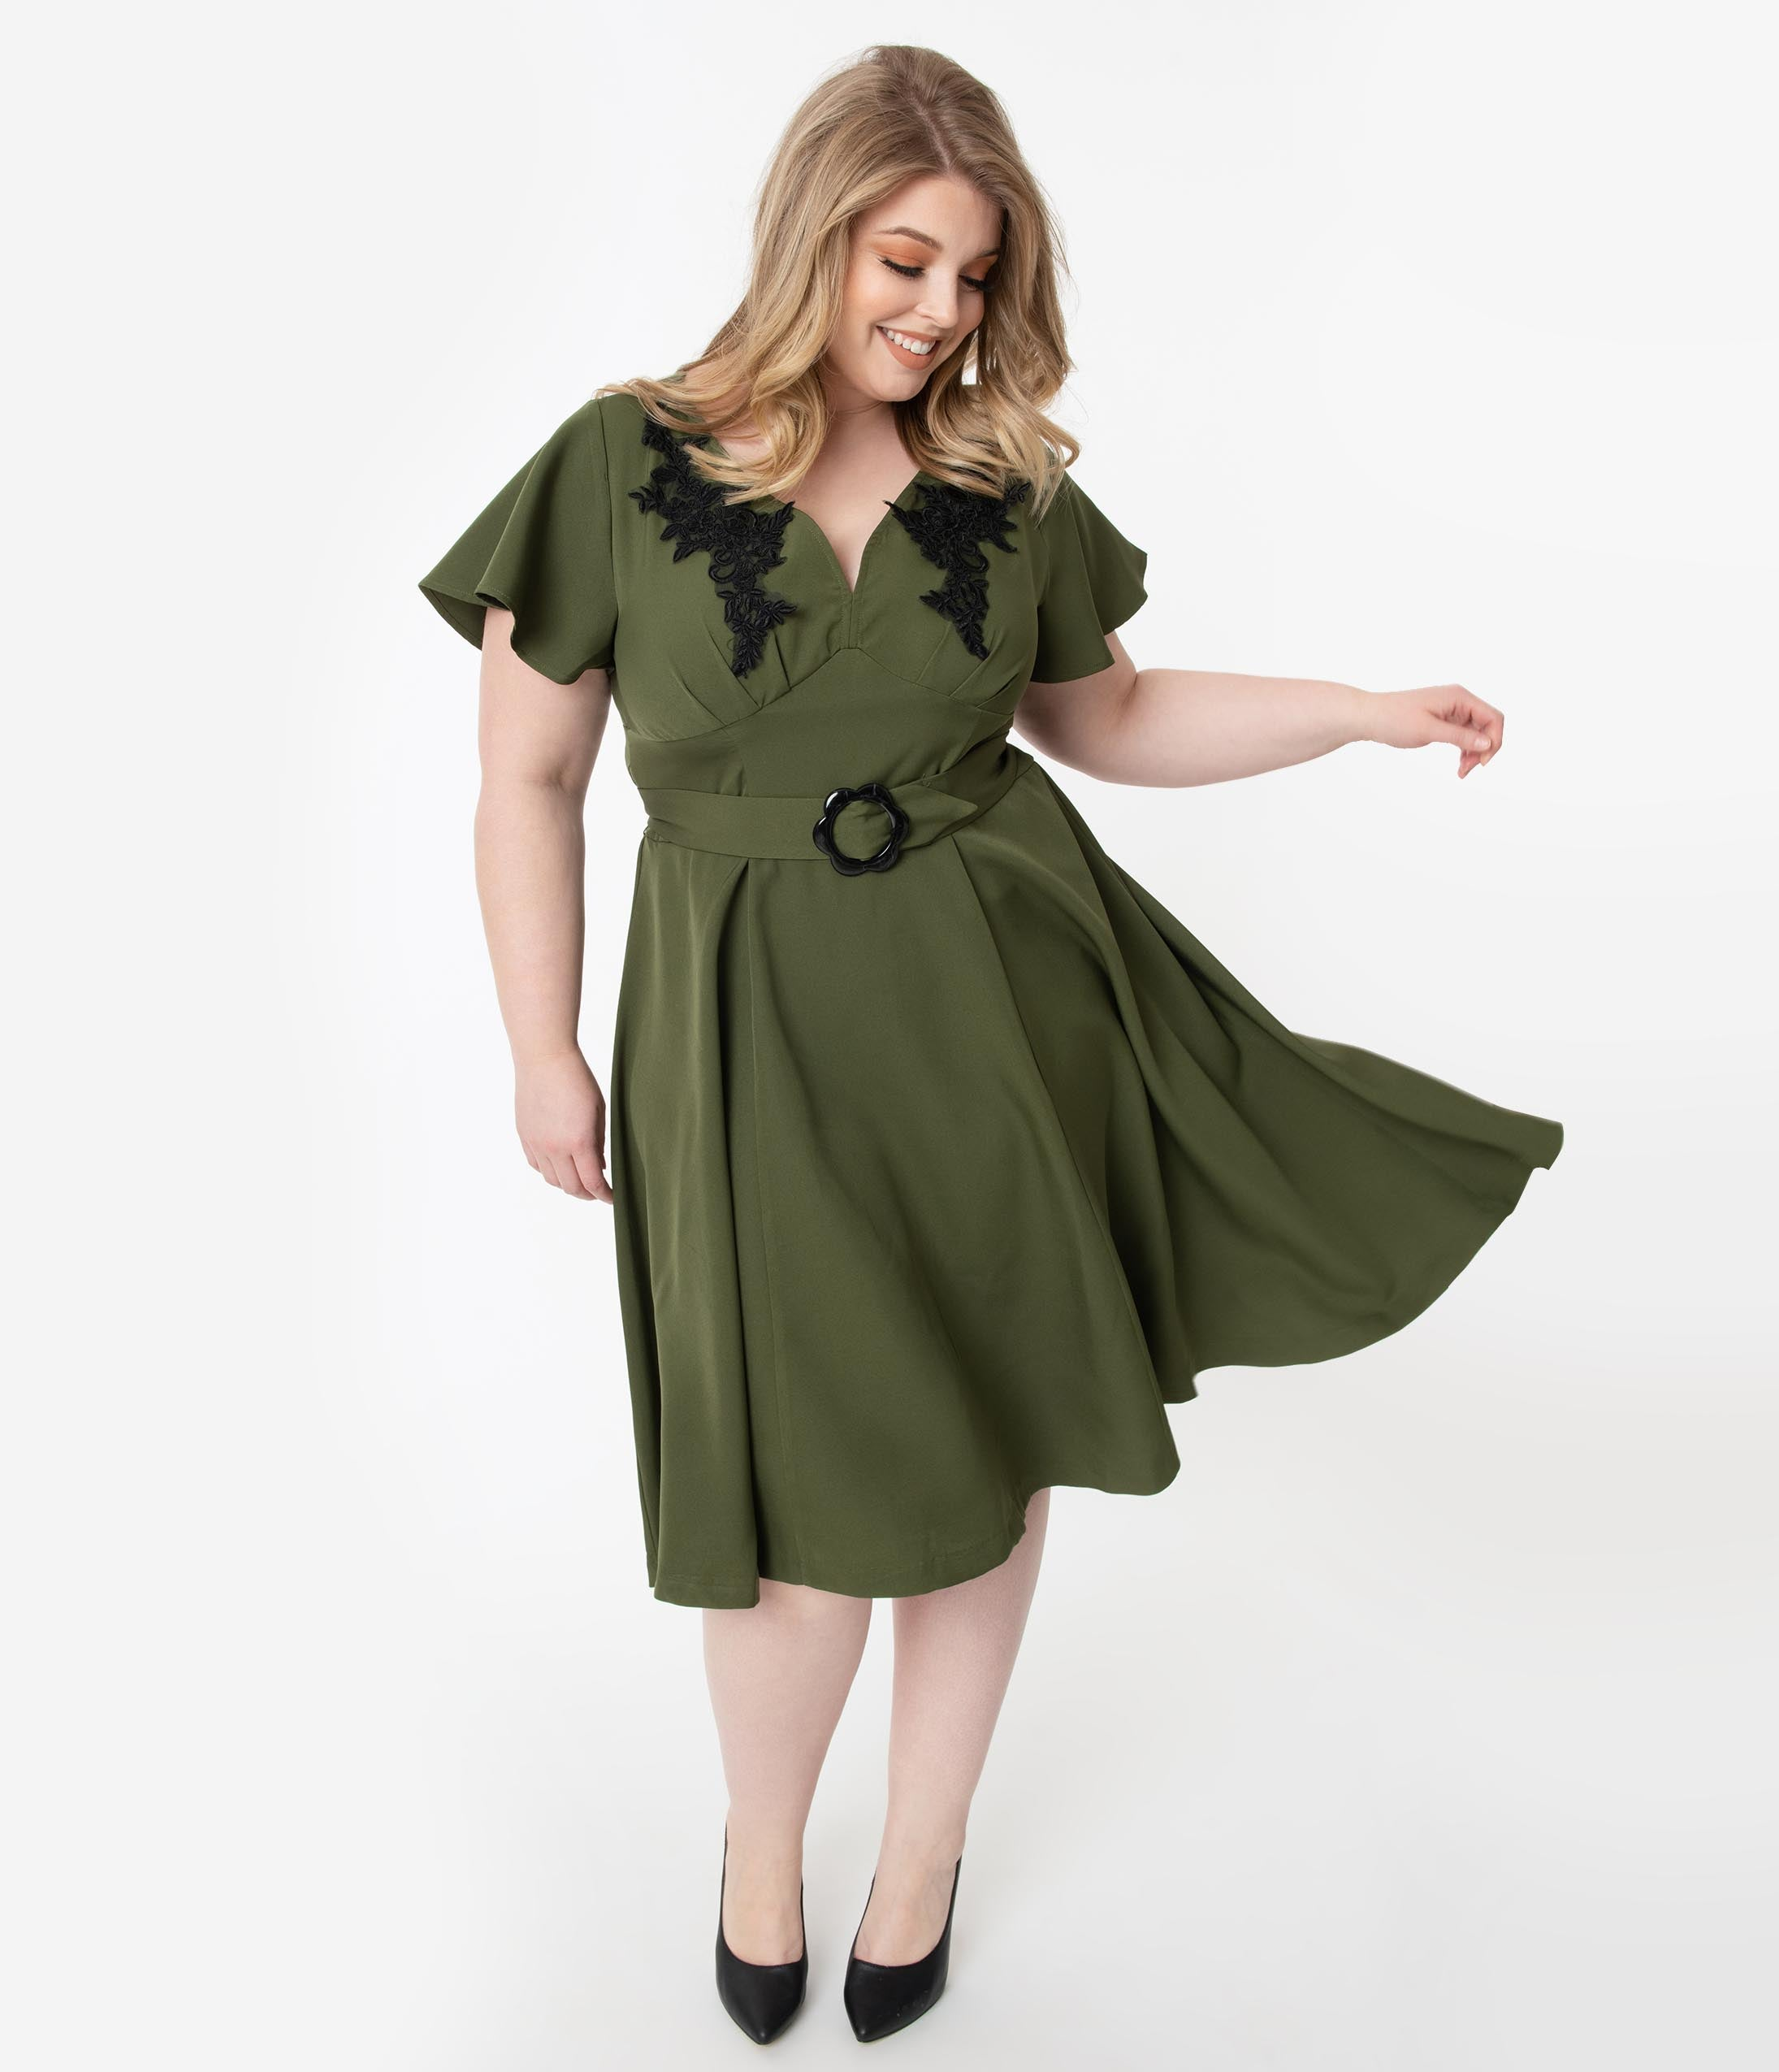 1940s Plus Size Dresses | Swing Dress, Tea Dress Unique Vintage Plus Size 1940S Olive  Black Embroidered Kay Swing Dress $78.00 AT vintagedancer.com